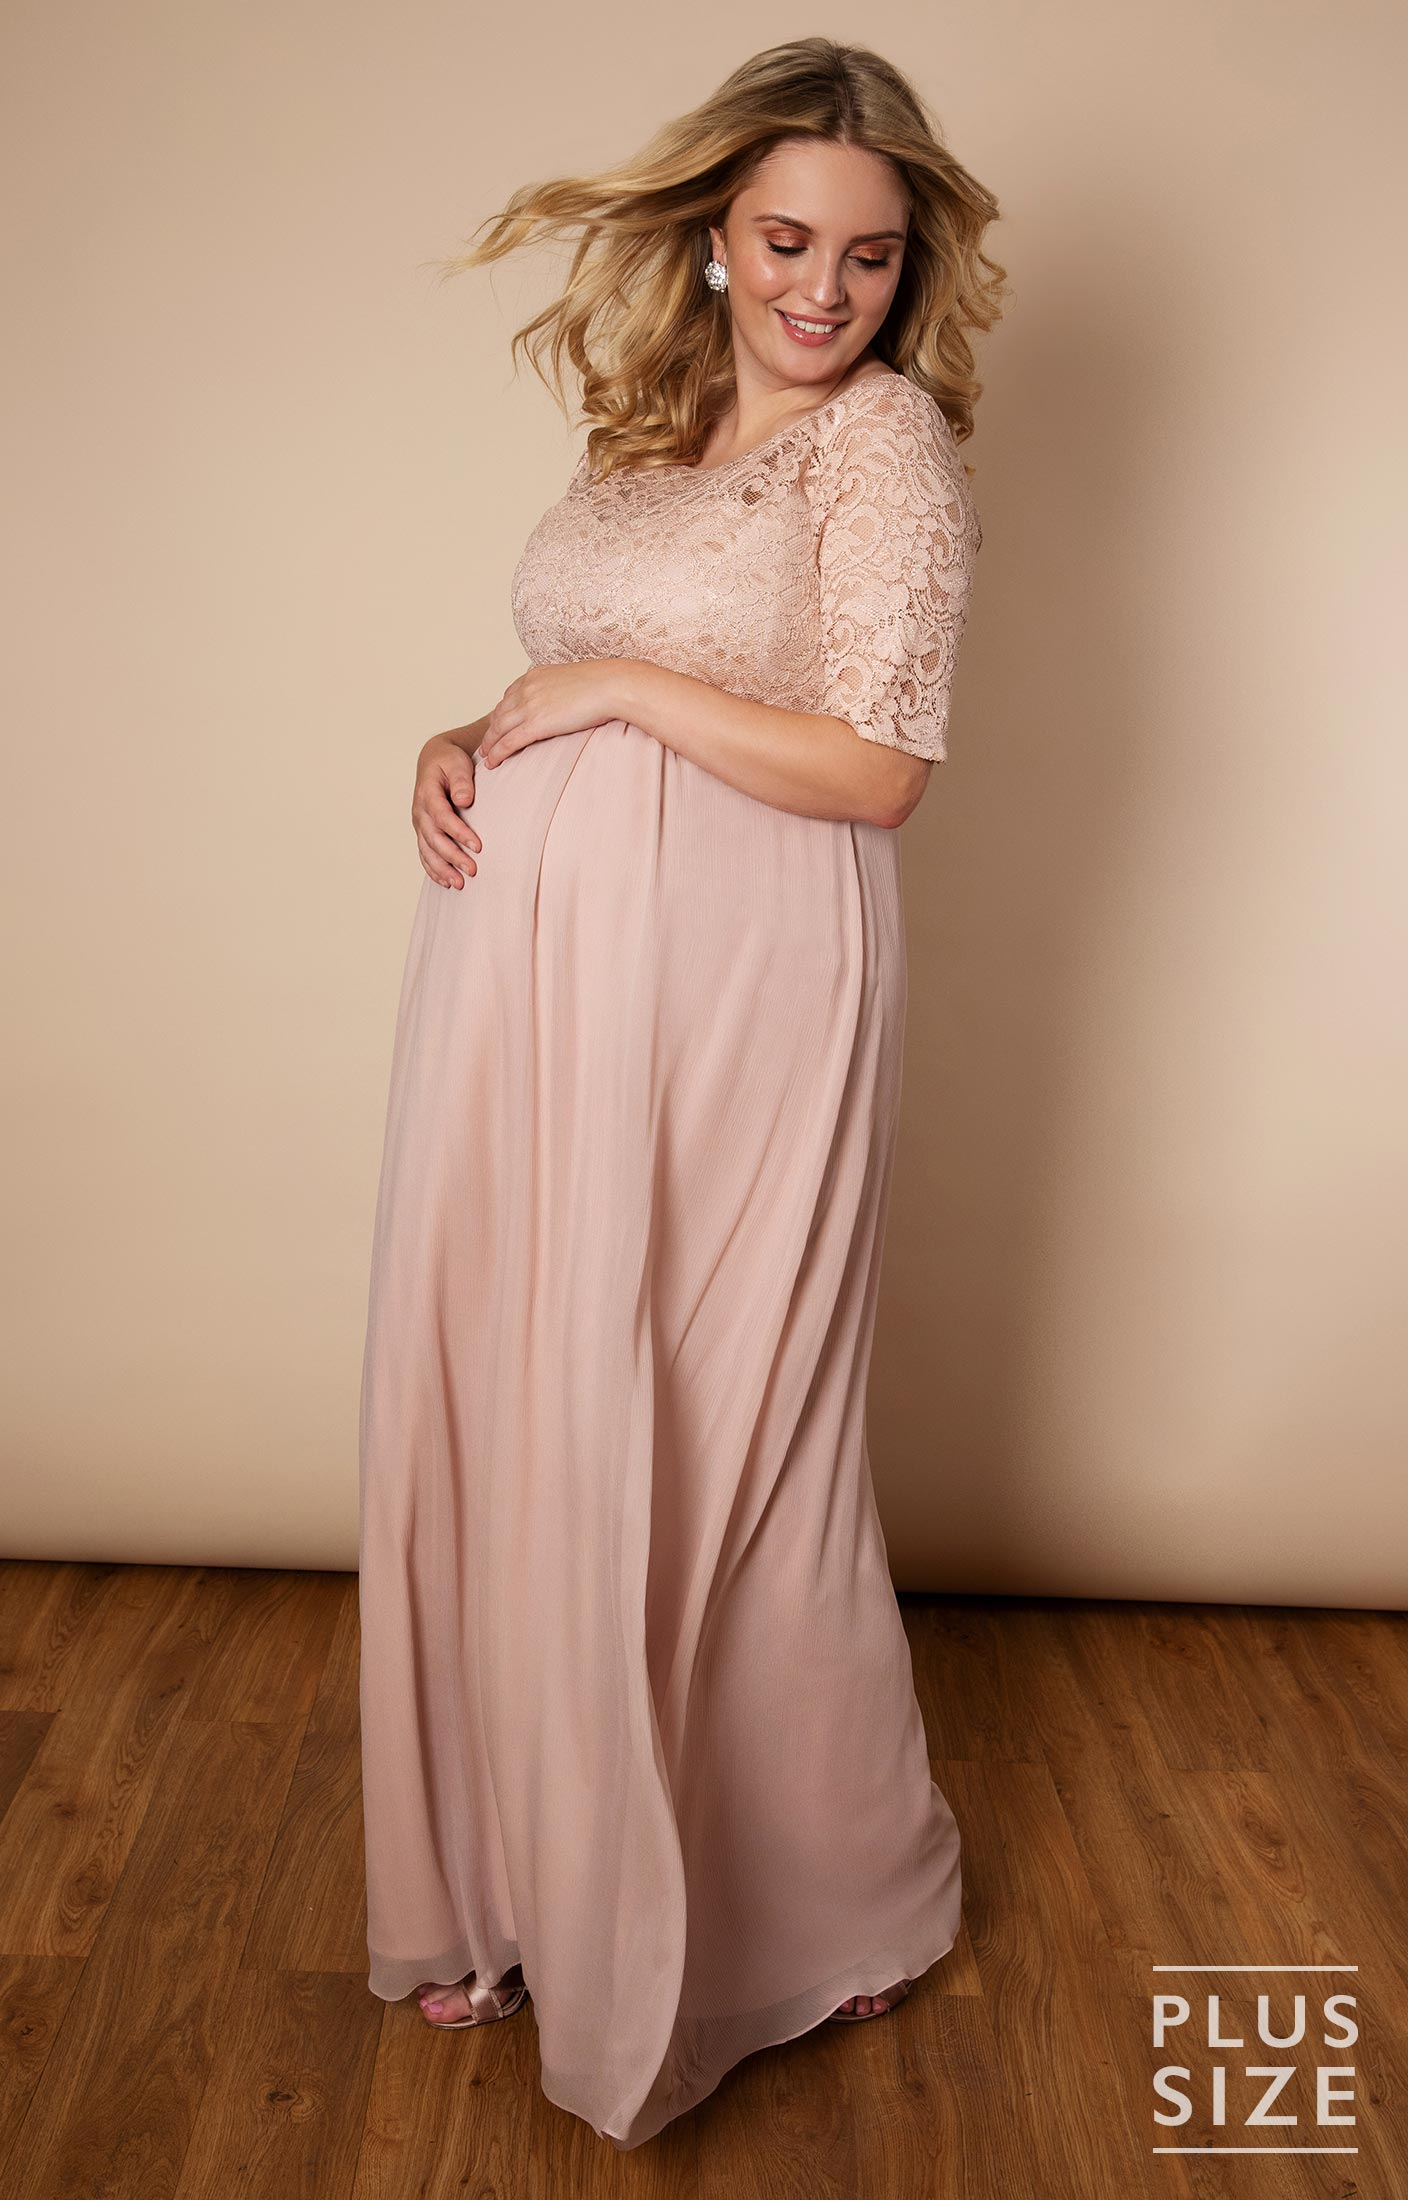 Alaska Plus Size Maternity Chiffon Wedding Gown - Maternity Wedding  Dresses, Evening Wear and Party Clothes by Tiffany Rose